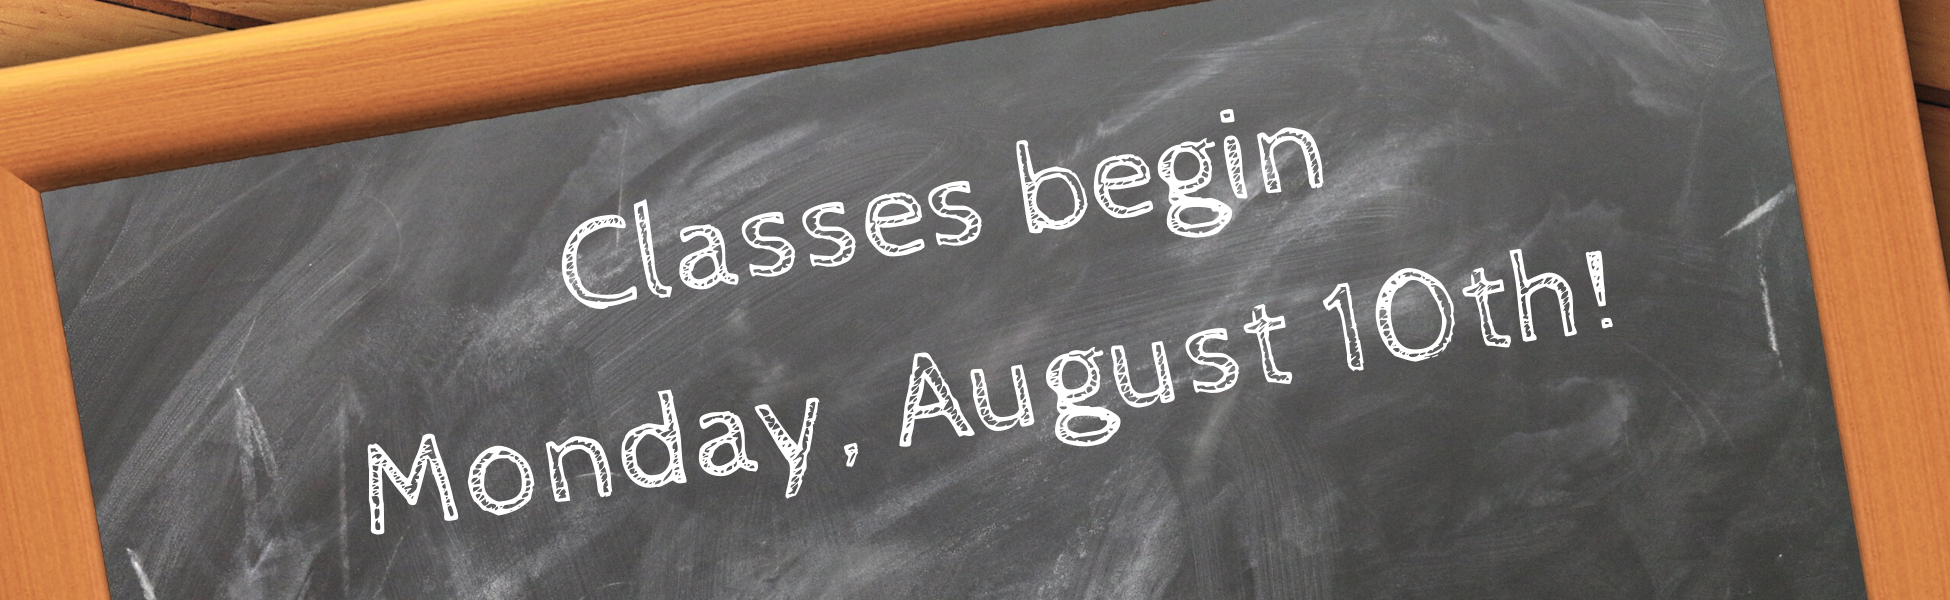 Classes begin on Monday, August 10th.